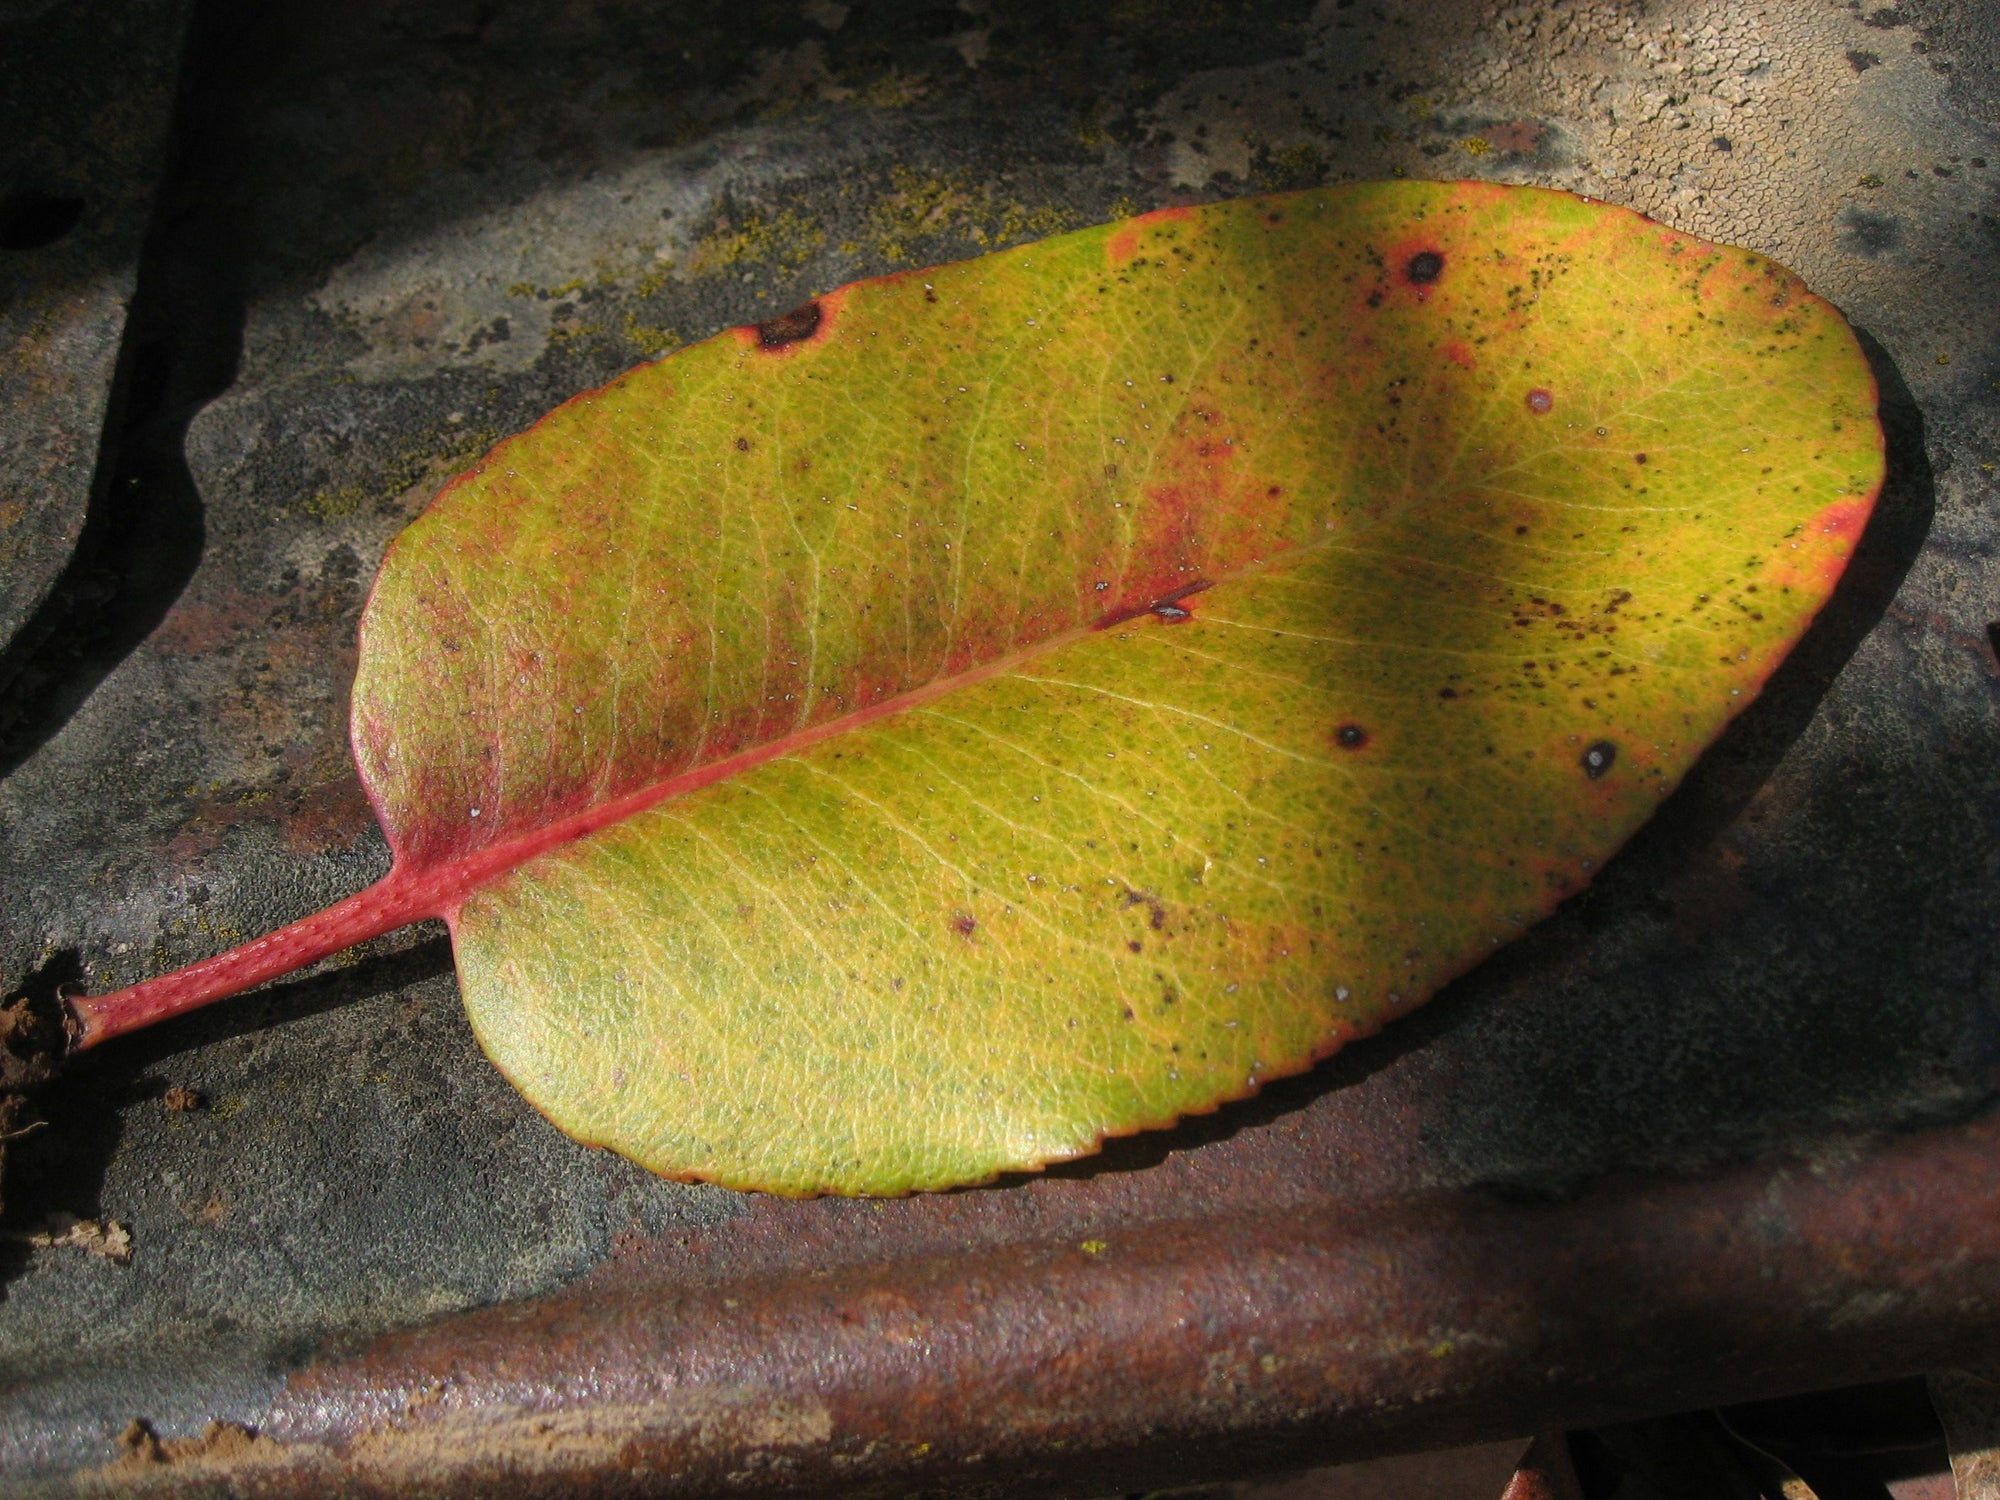 <I>Madrone Leaf on Old Ford Model T</I><br>Mendocino, California, 2011<br><br>GC0247